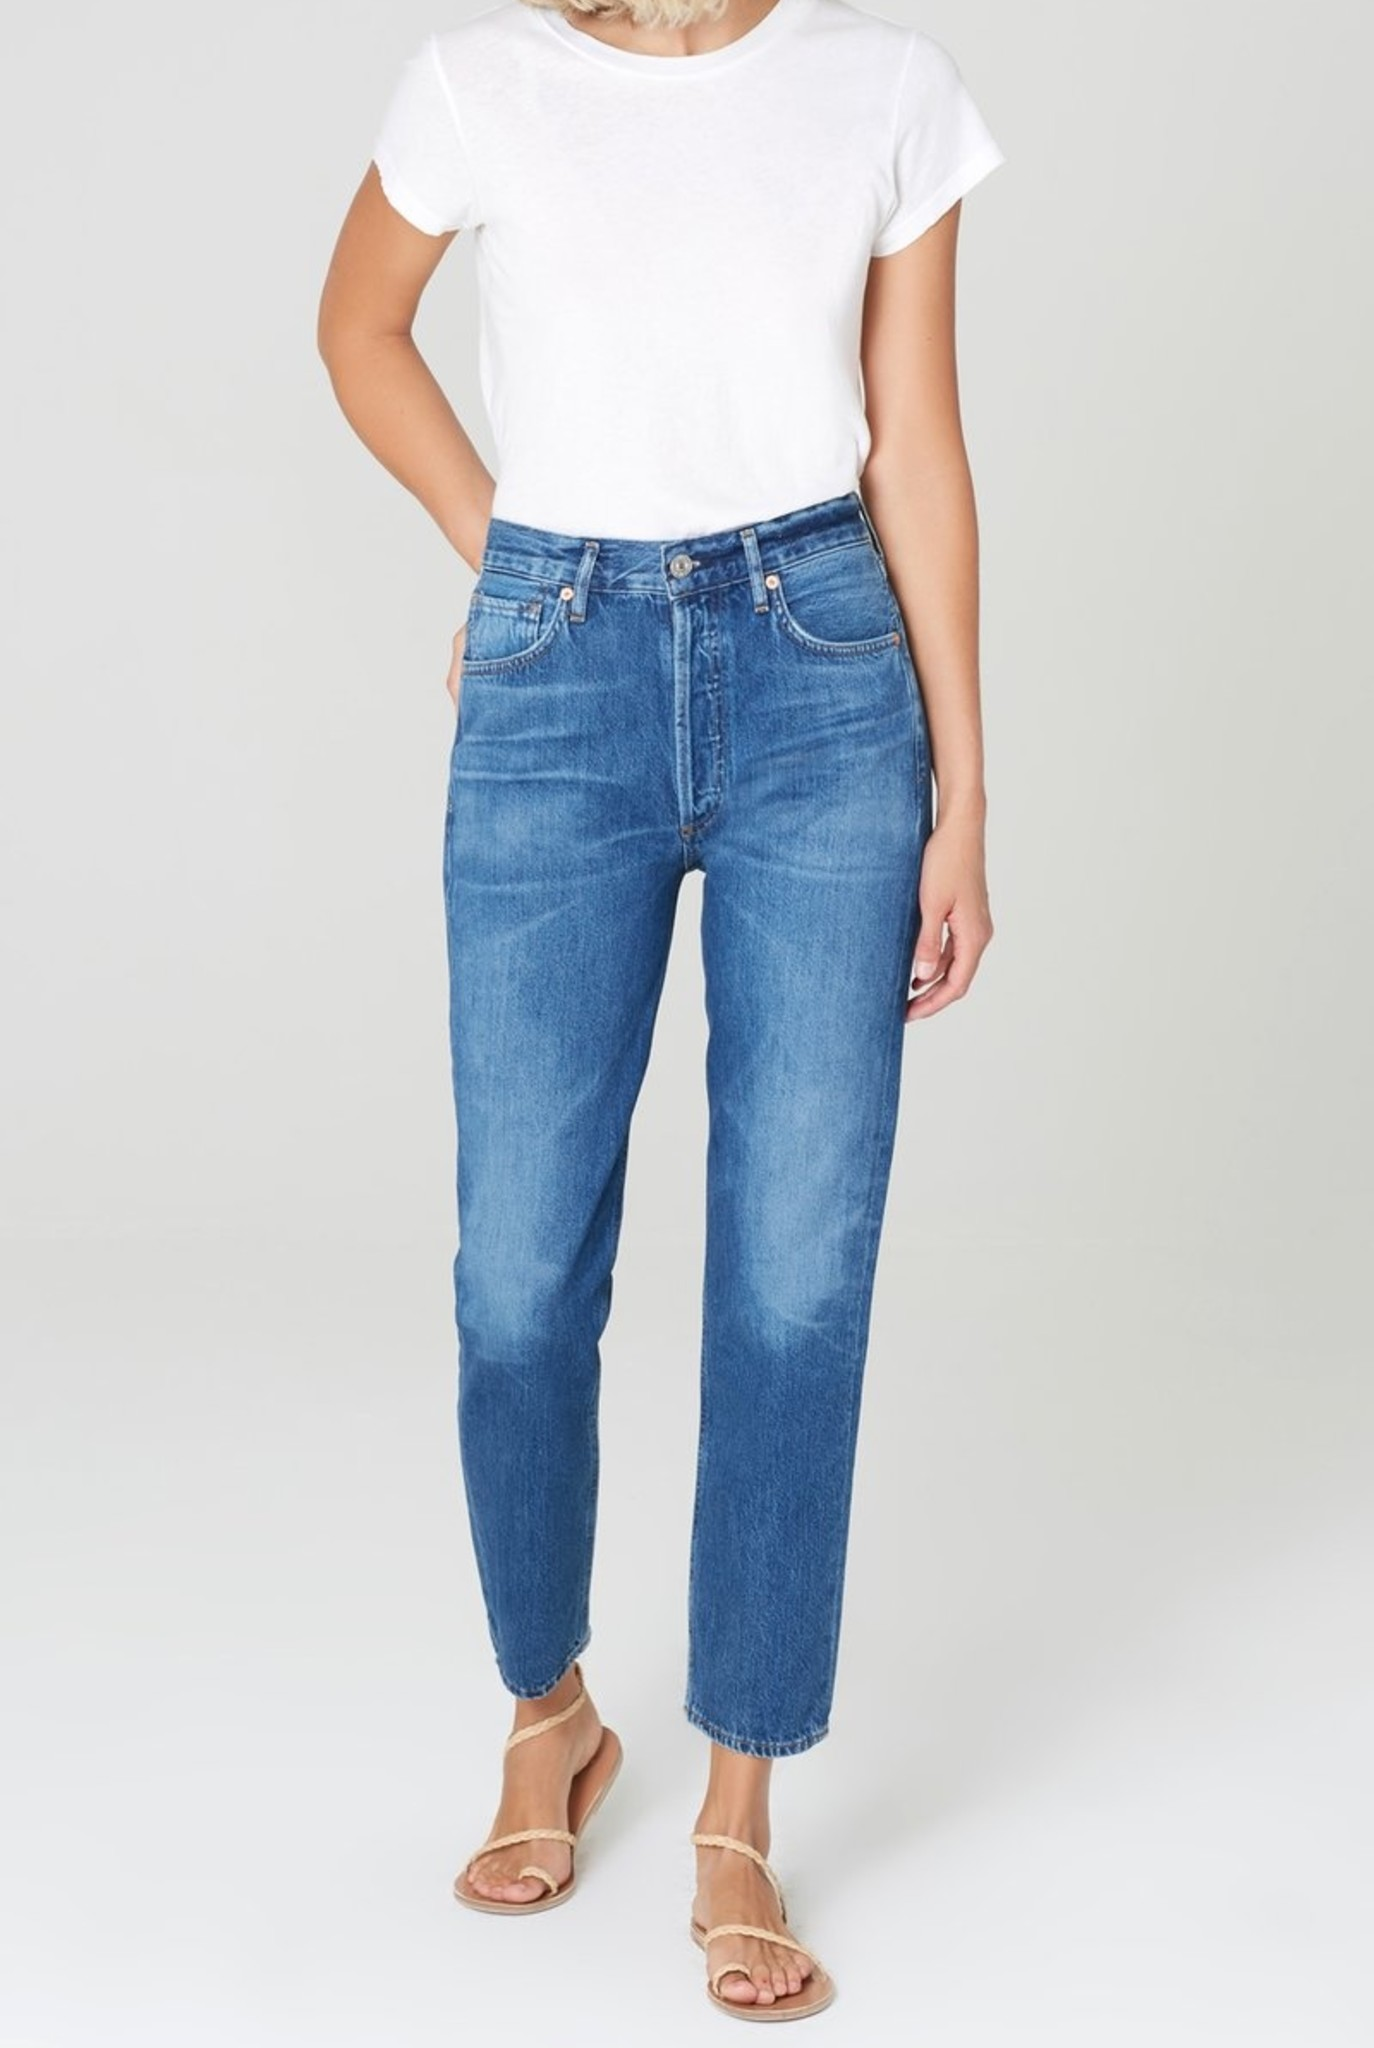 Charlotte Jeans Hold On